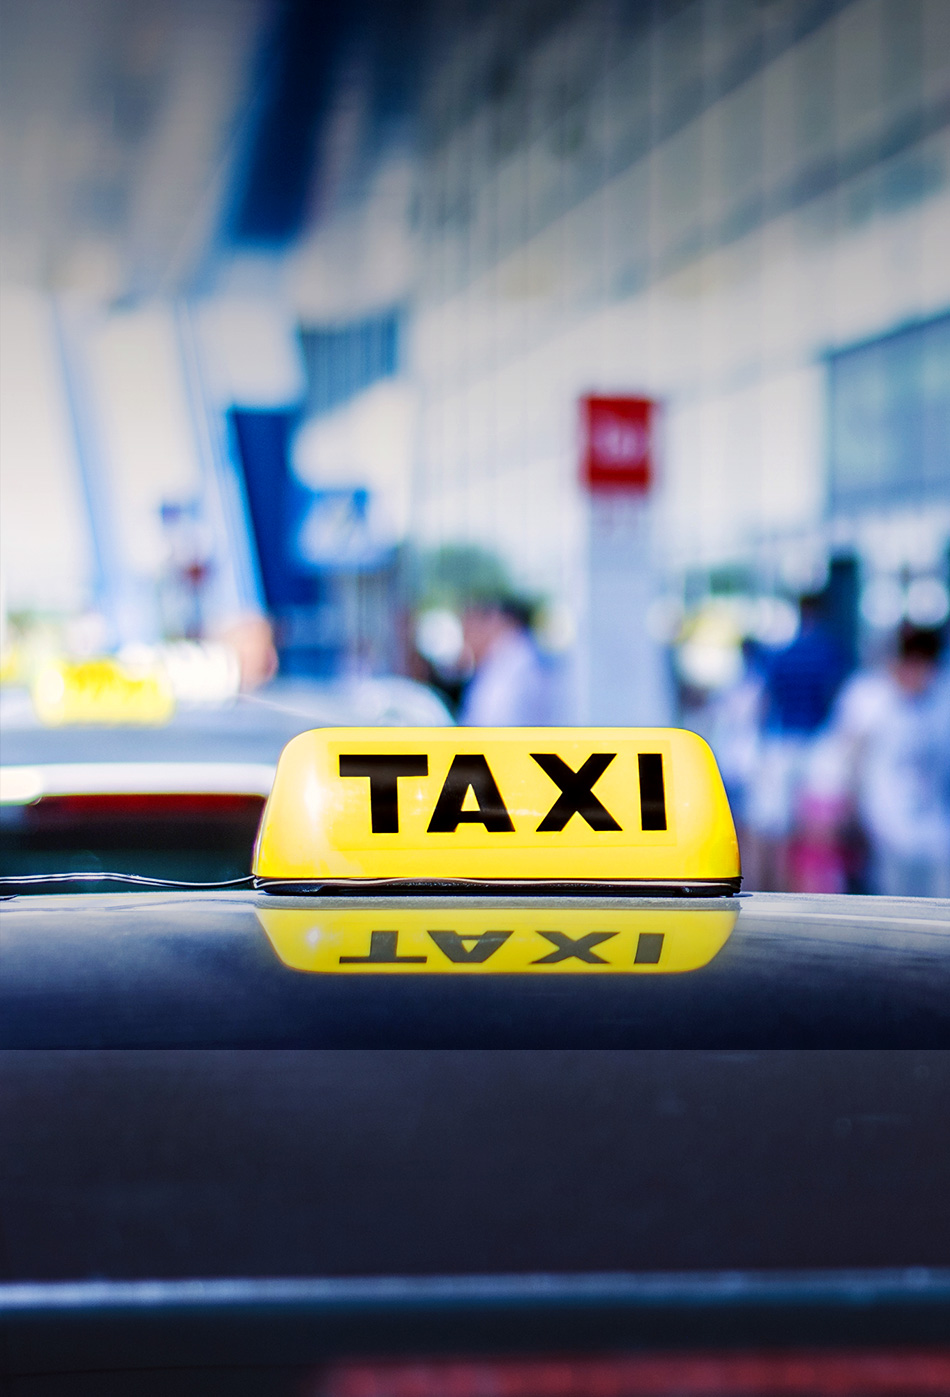 About Springfield Yellow Cab - Fairfax County